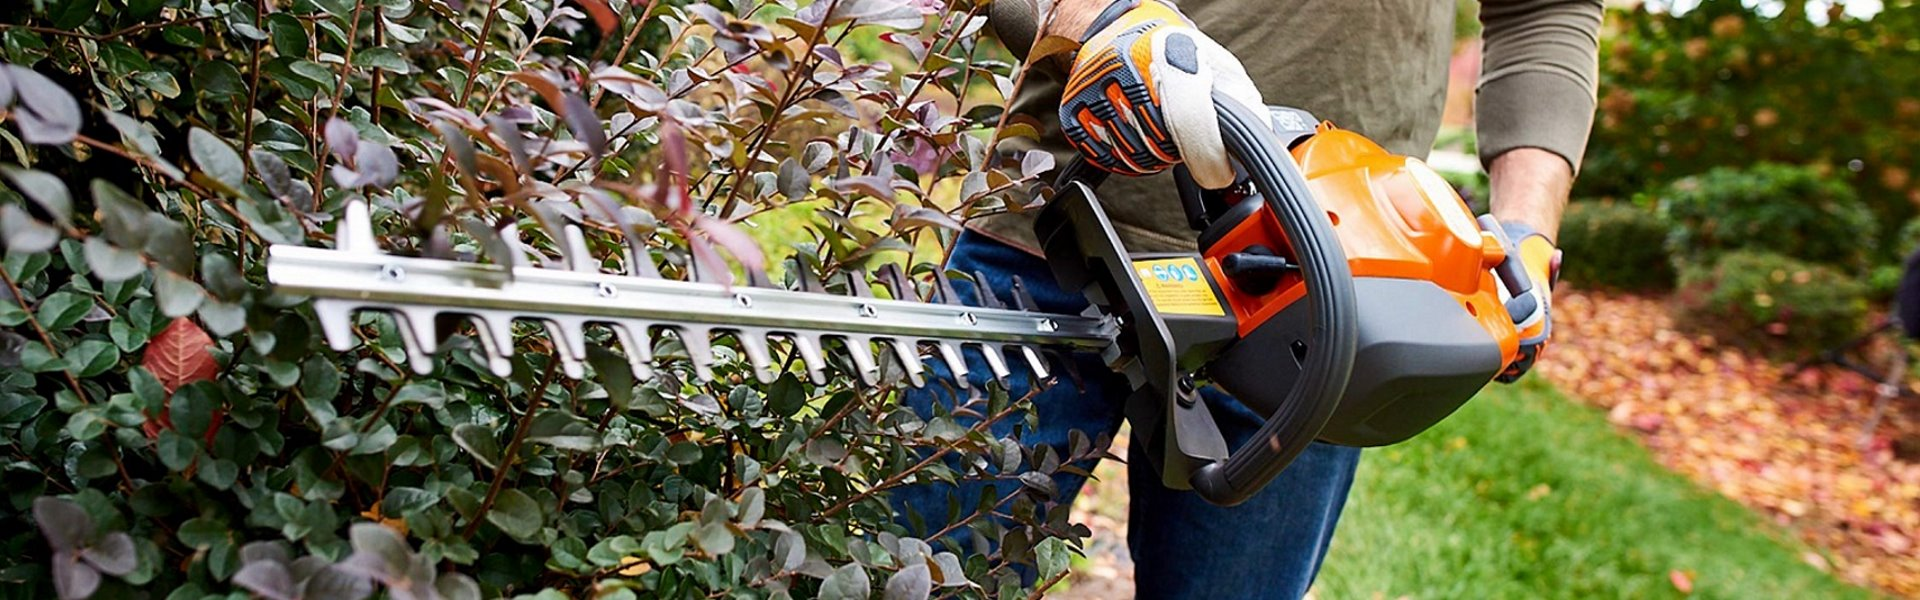 5 Best Gas Hedge Trimmers – More Power For Your Trimming